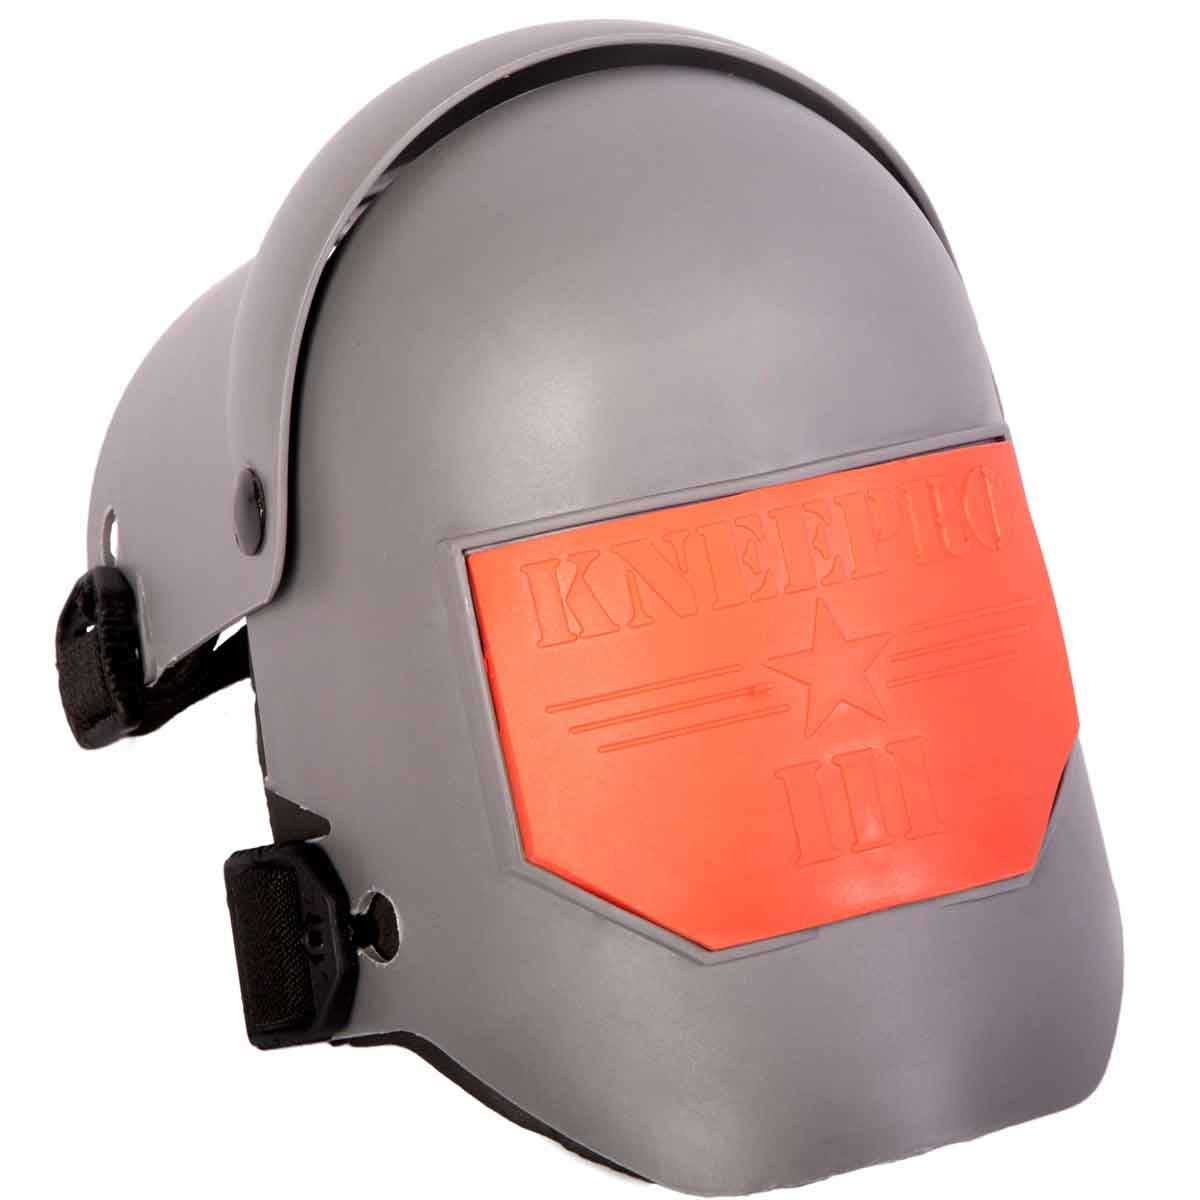 KP Industries Knee Pro Ultra Flex